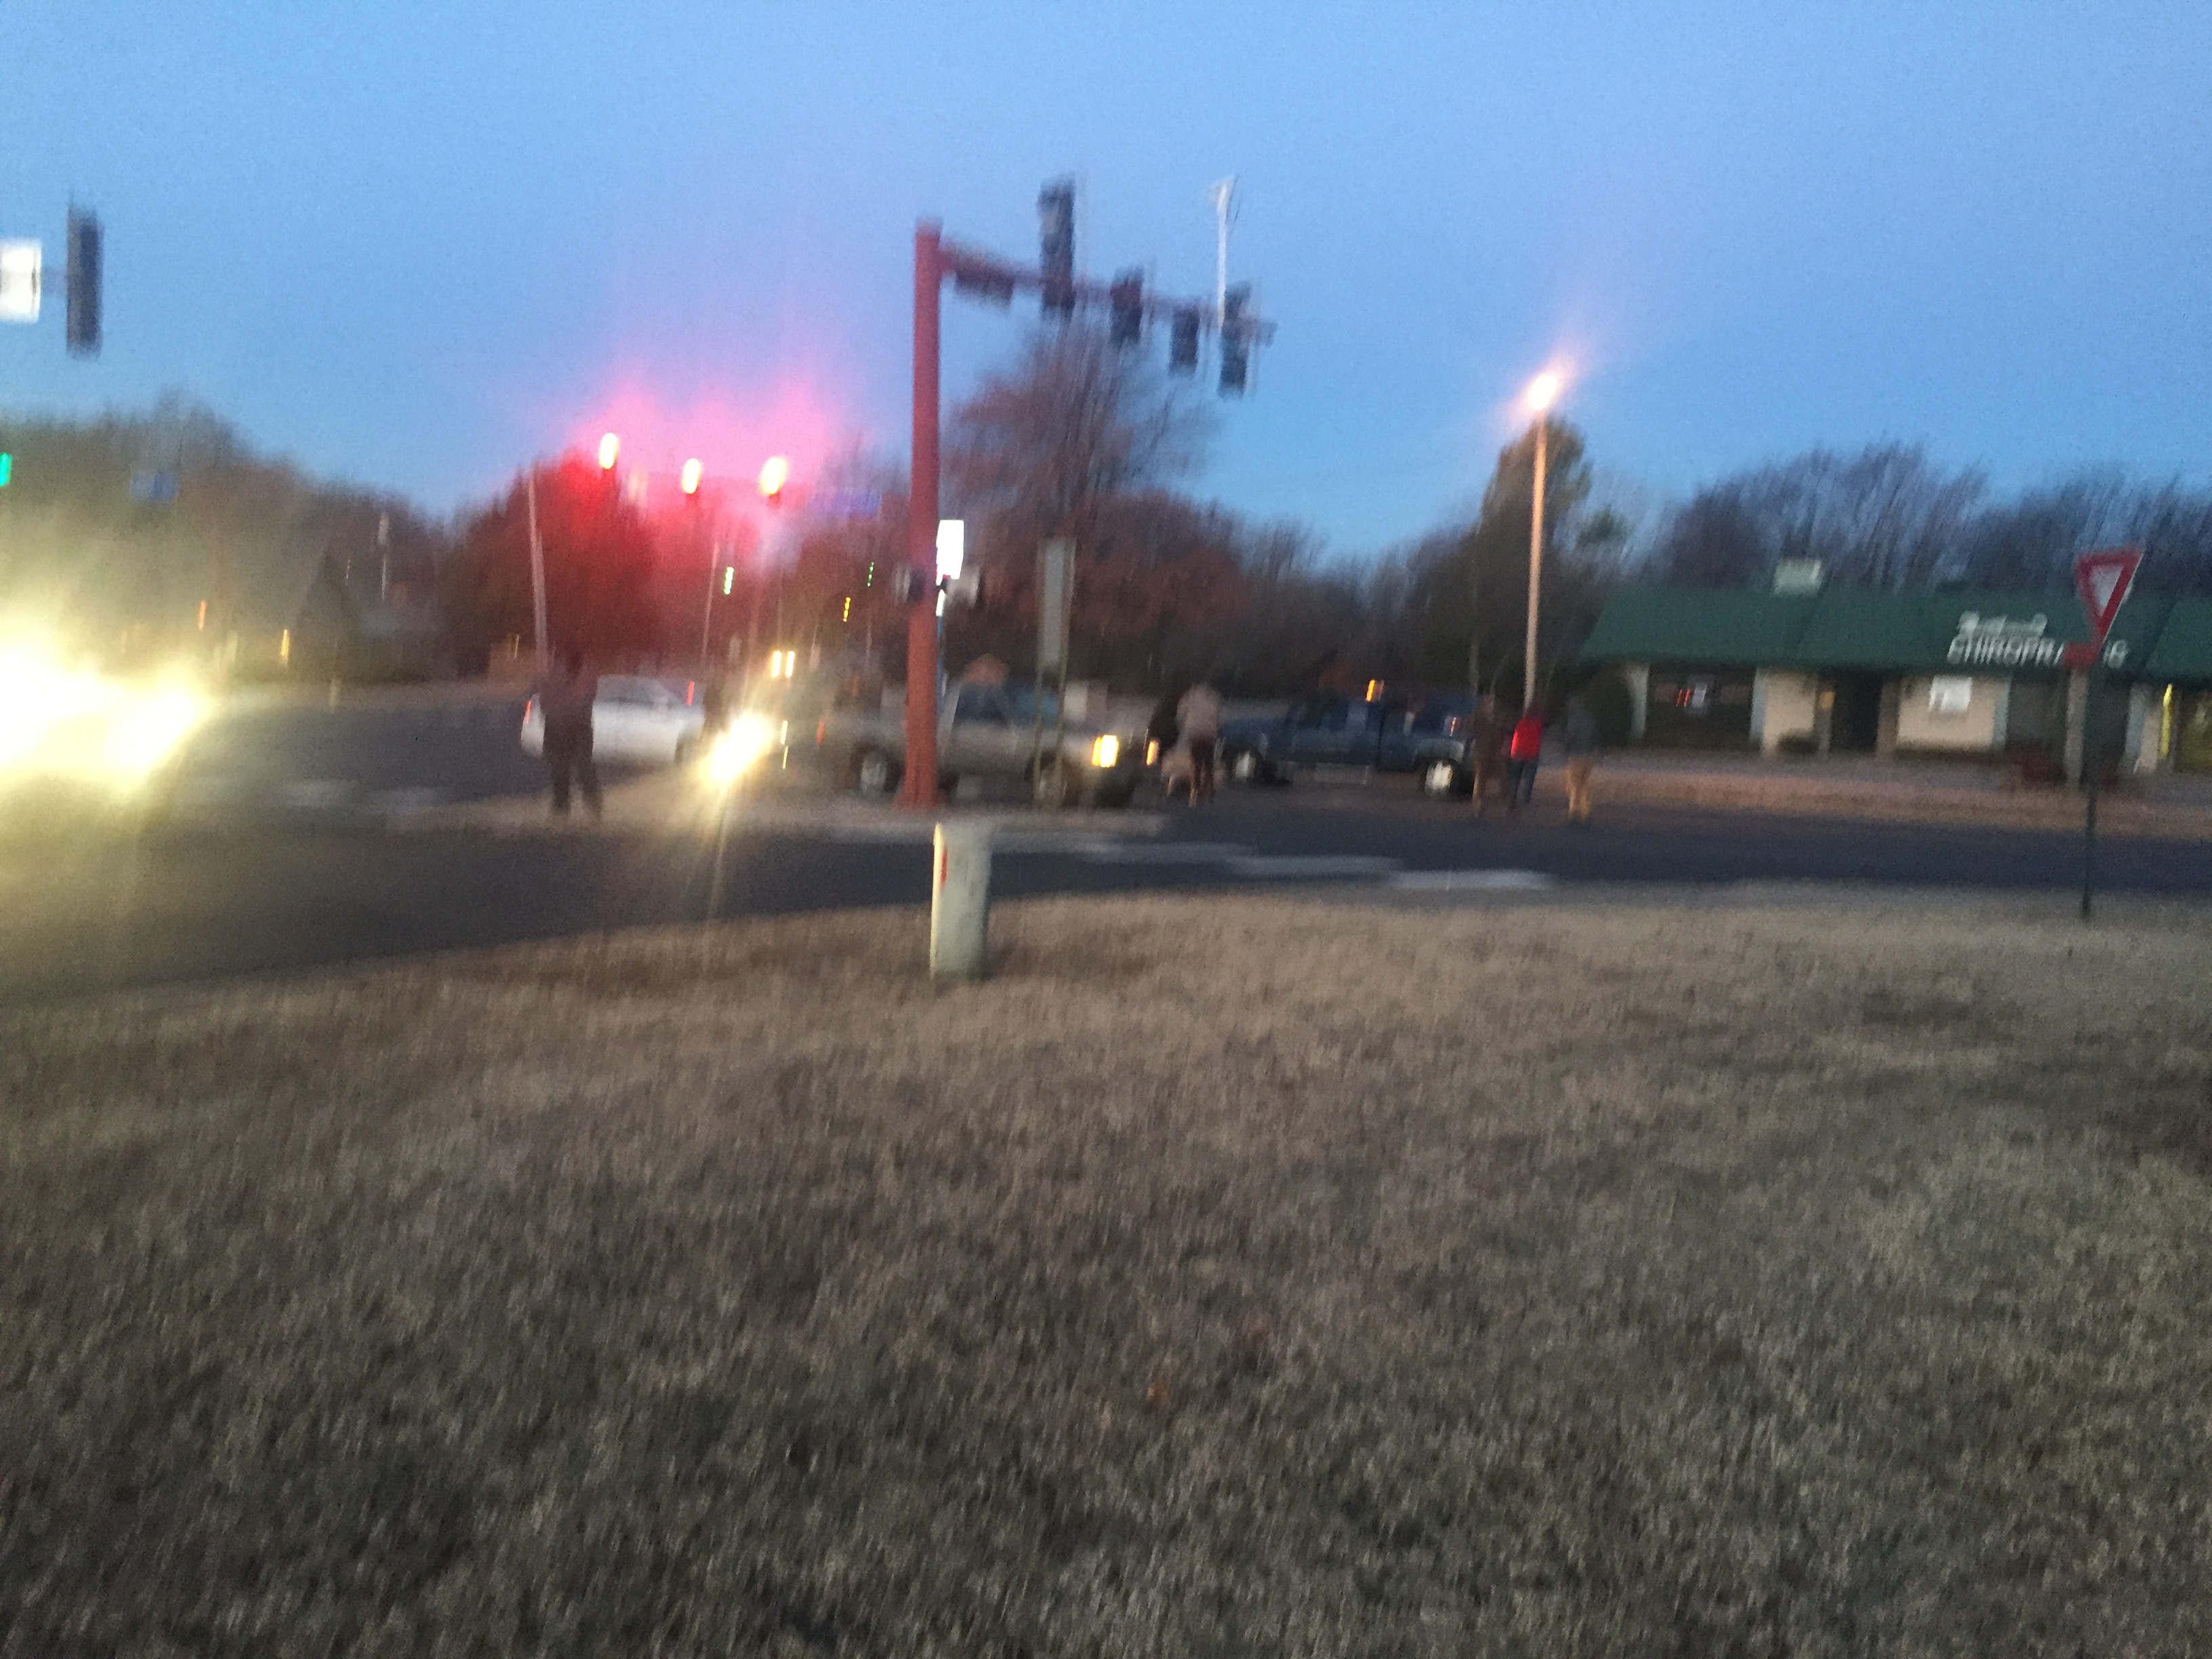 Pedestrian versus vehicle accident on Gary St. and Old Greenwood in Fort Smith.